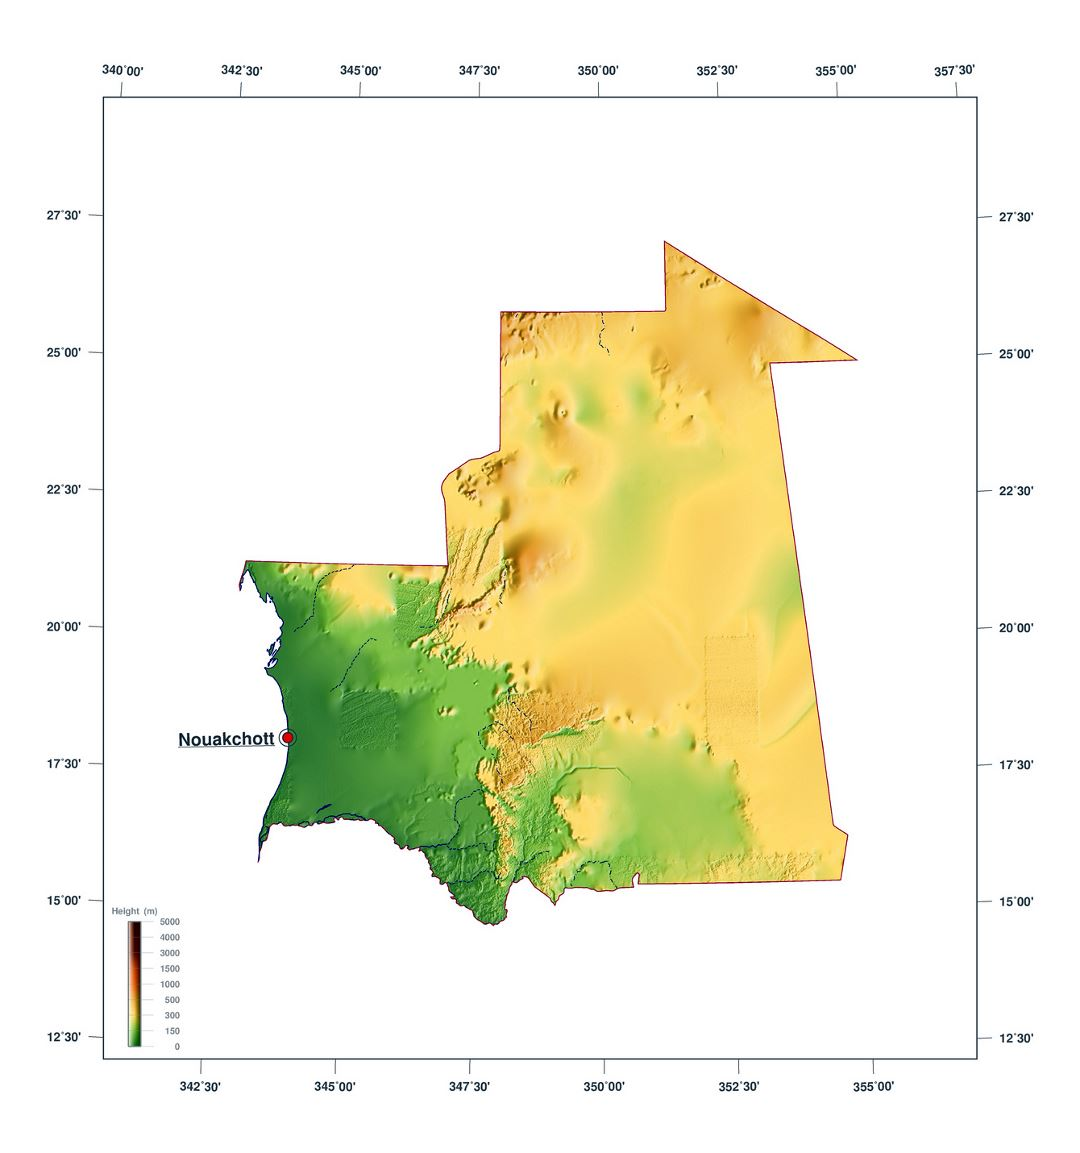 Large elevation map of Mauritania